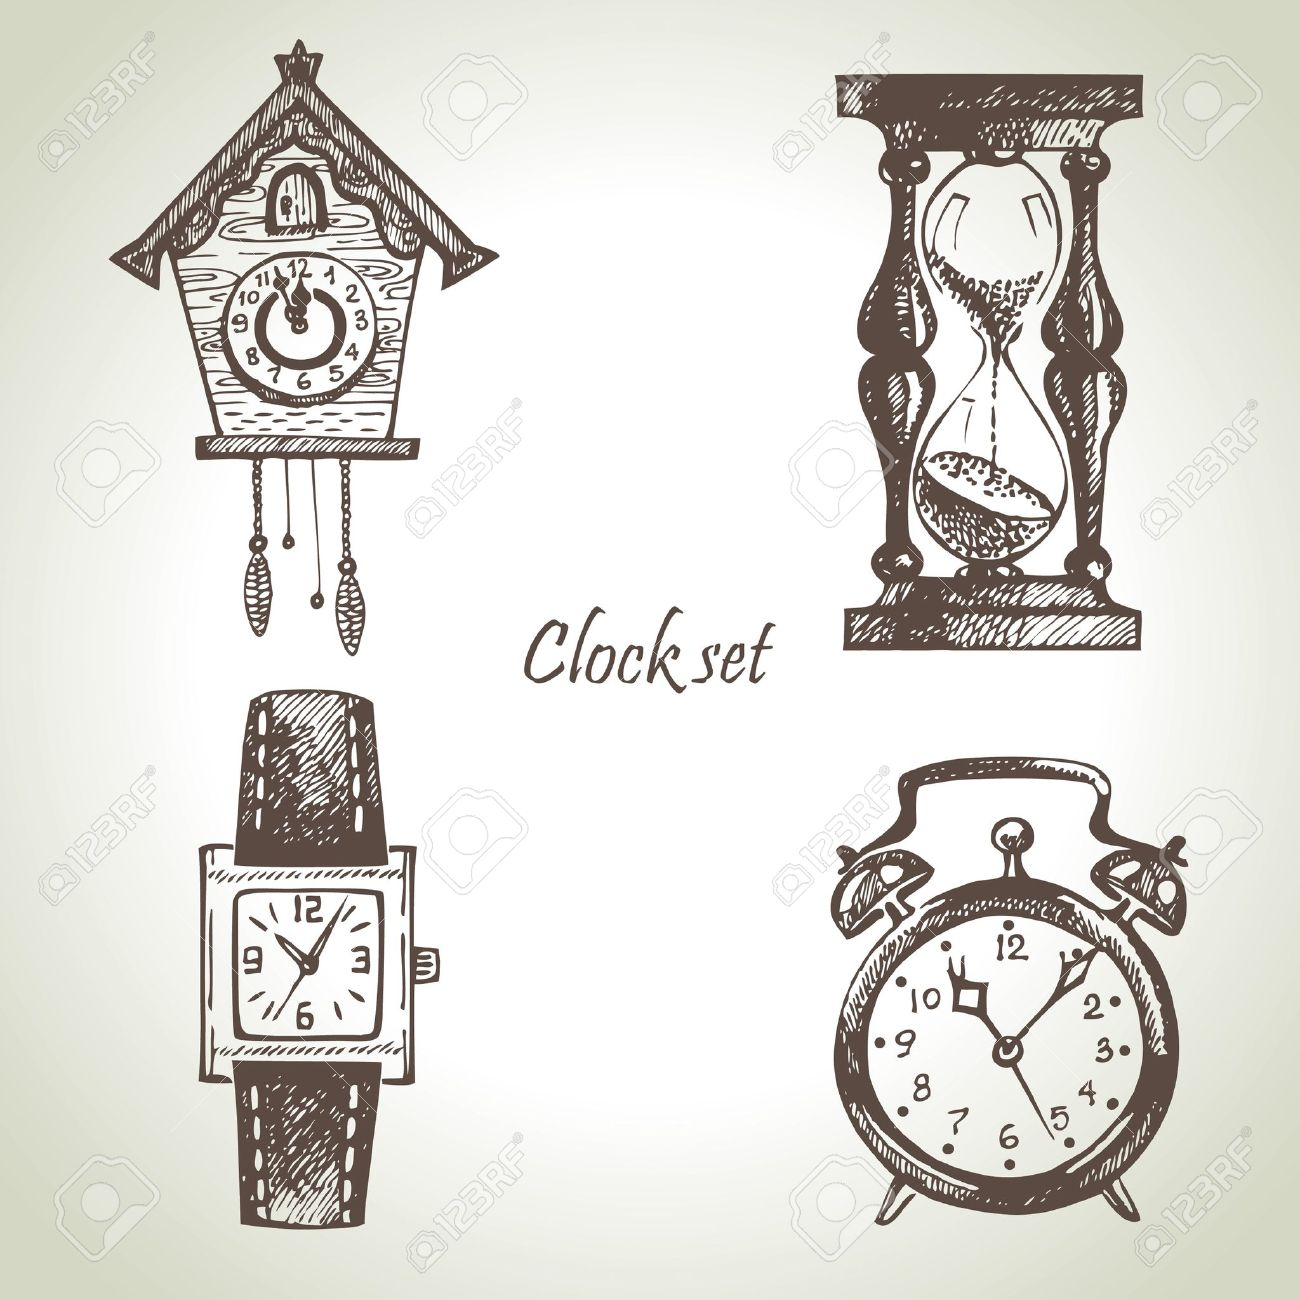 sand timer art. hand drawn set of clocks and watches stock vector 16201285 sand timer art c